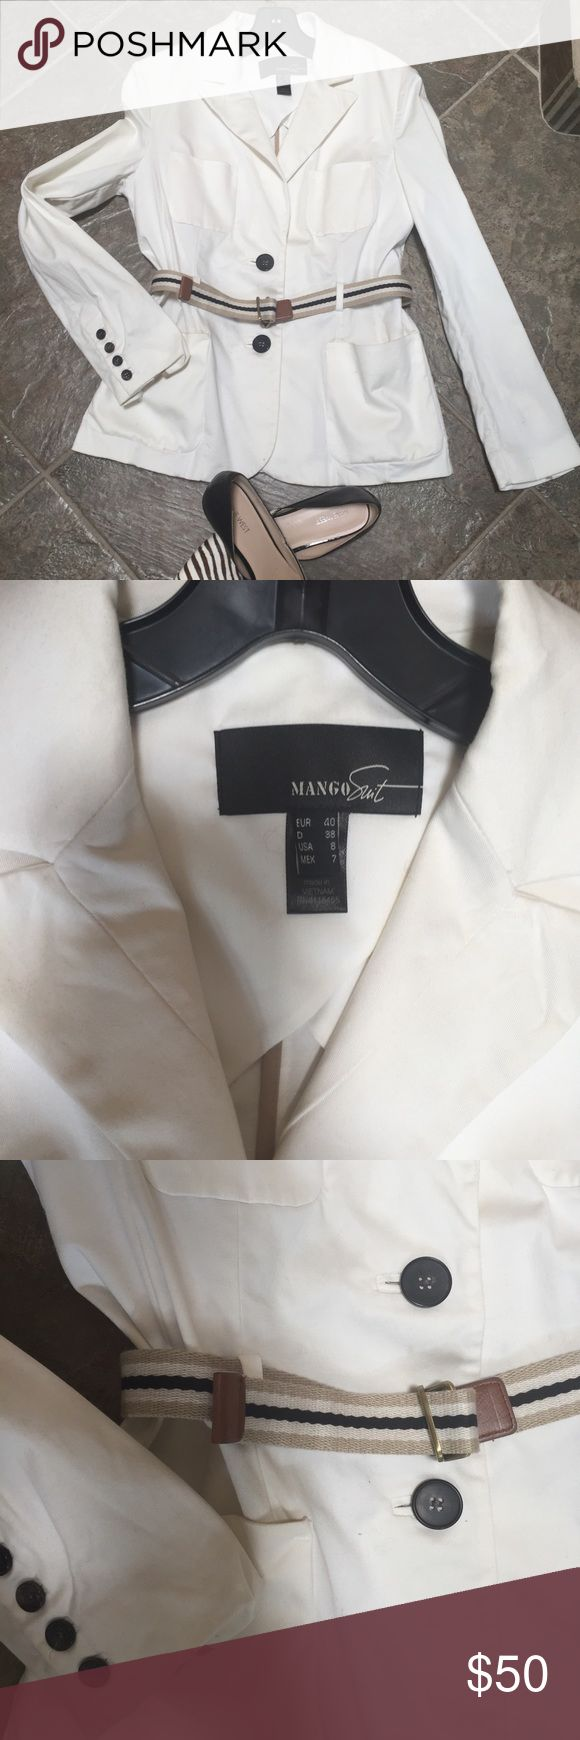 Blazer from Mango White blazer  from Mango Suit. Size 8. 97% cotton 3% elastane. It has two front pockets, one decorative pocket on the left side and stripy belt, worn couple times, perfect condition, after dry clean. Mango Suit Jackets & Coats Blazers